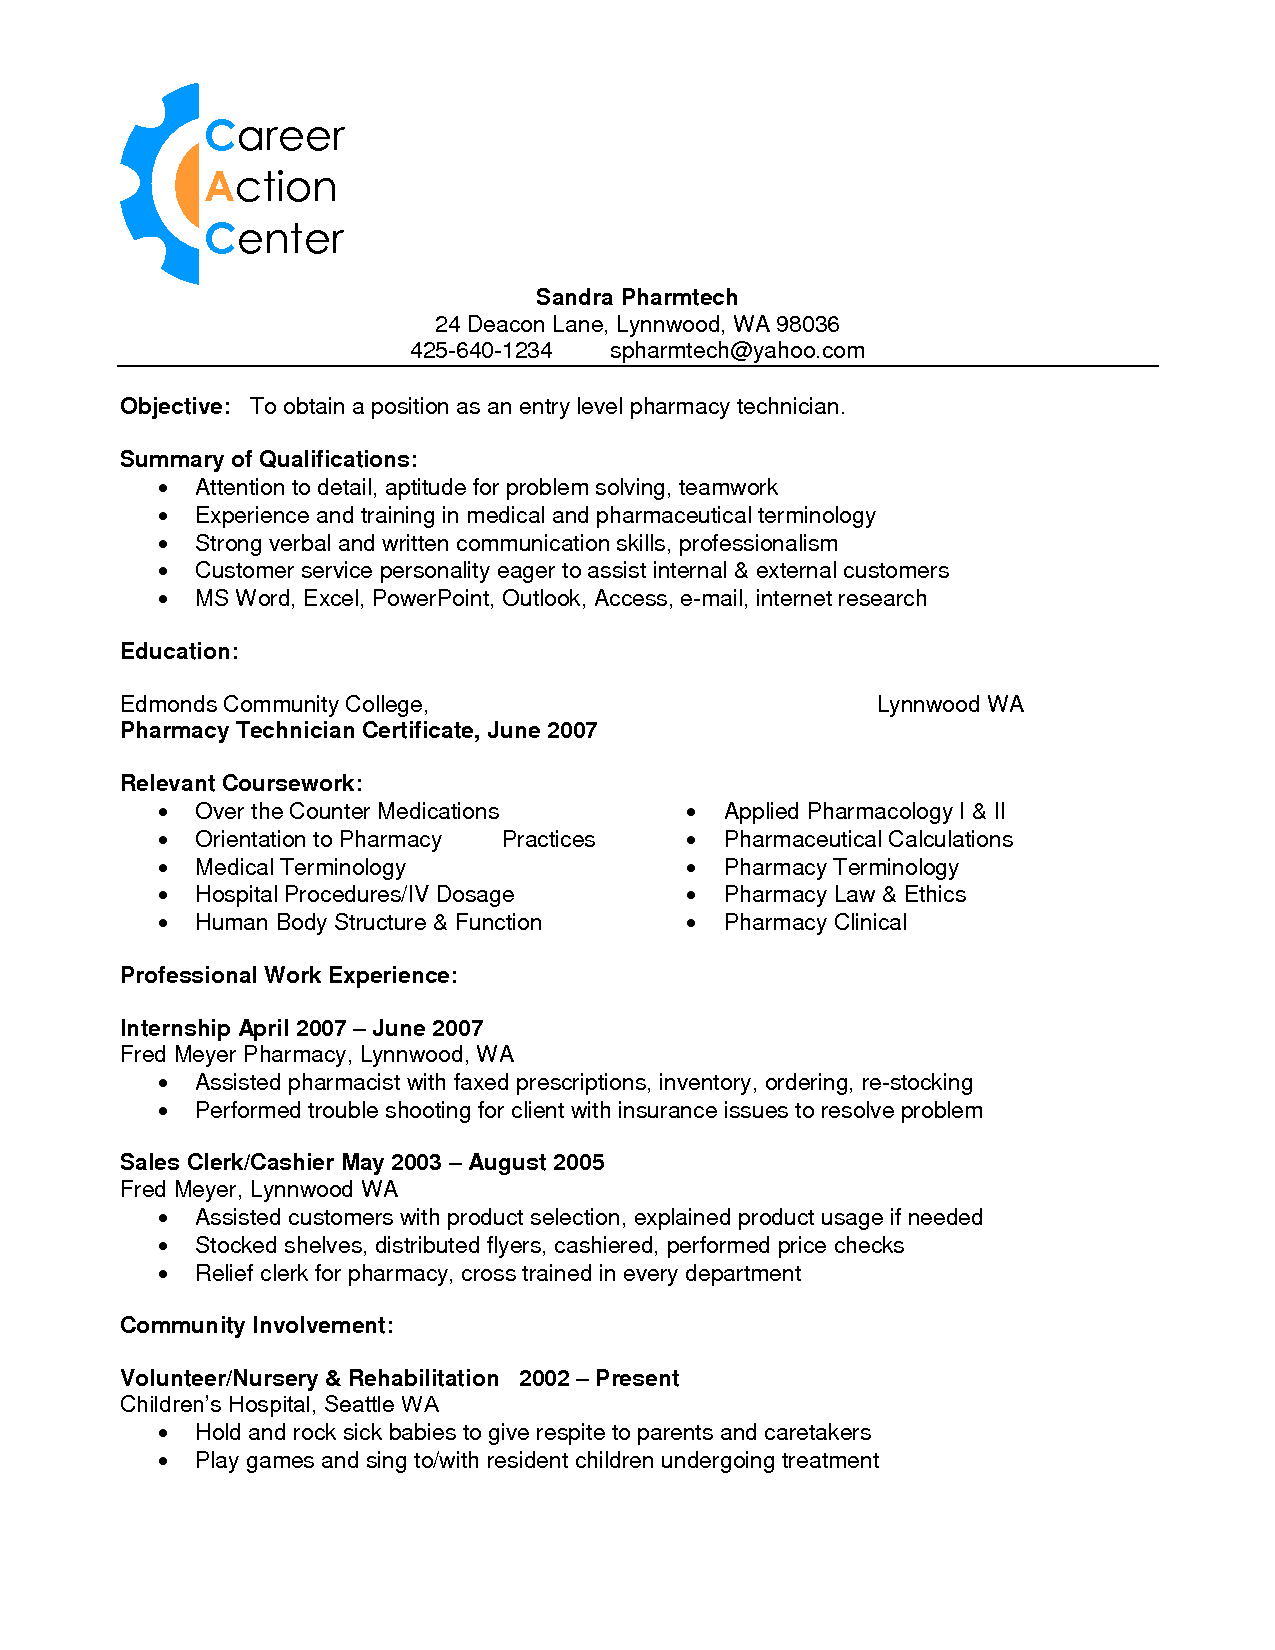 Job Objective On Resume Sample Resume For Bank Teller At Entry Level  Httpwww